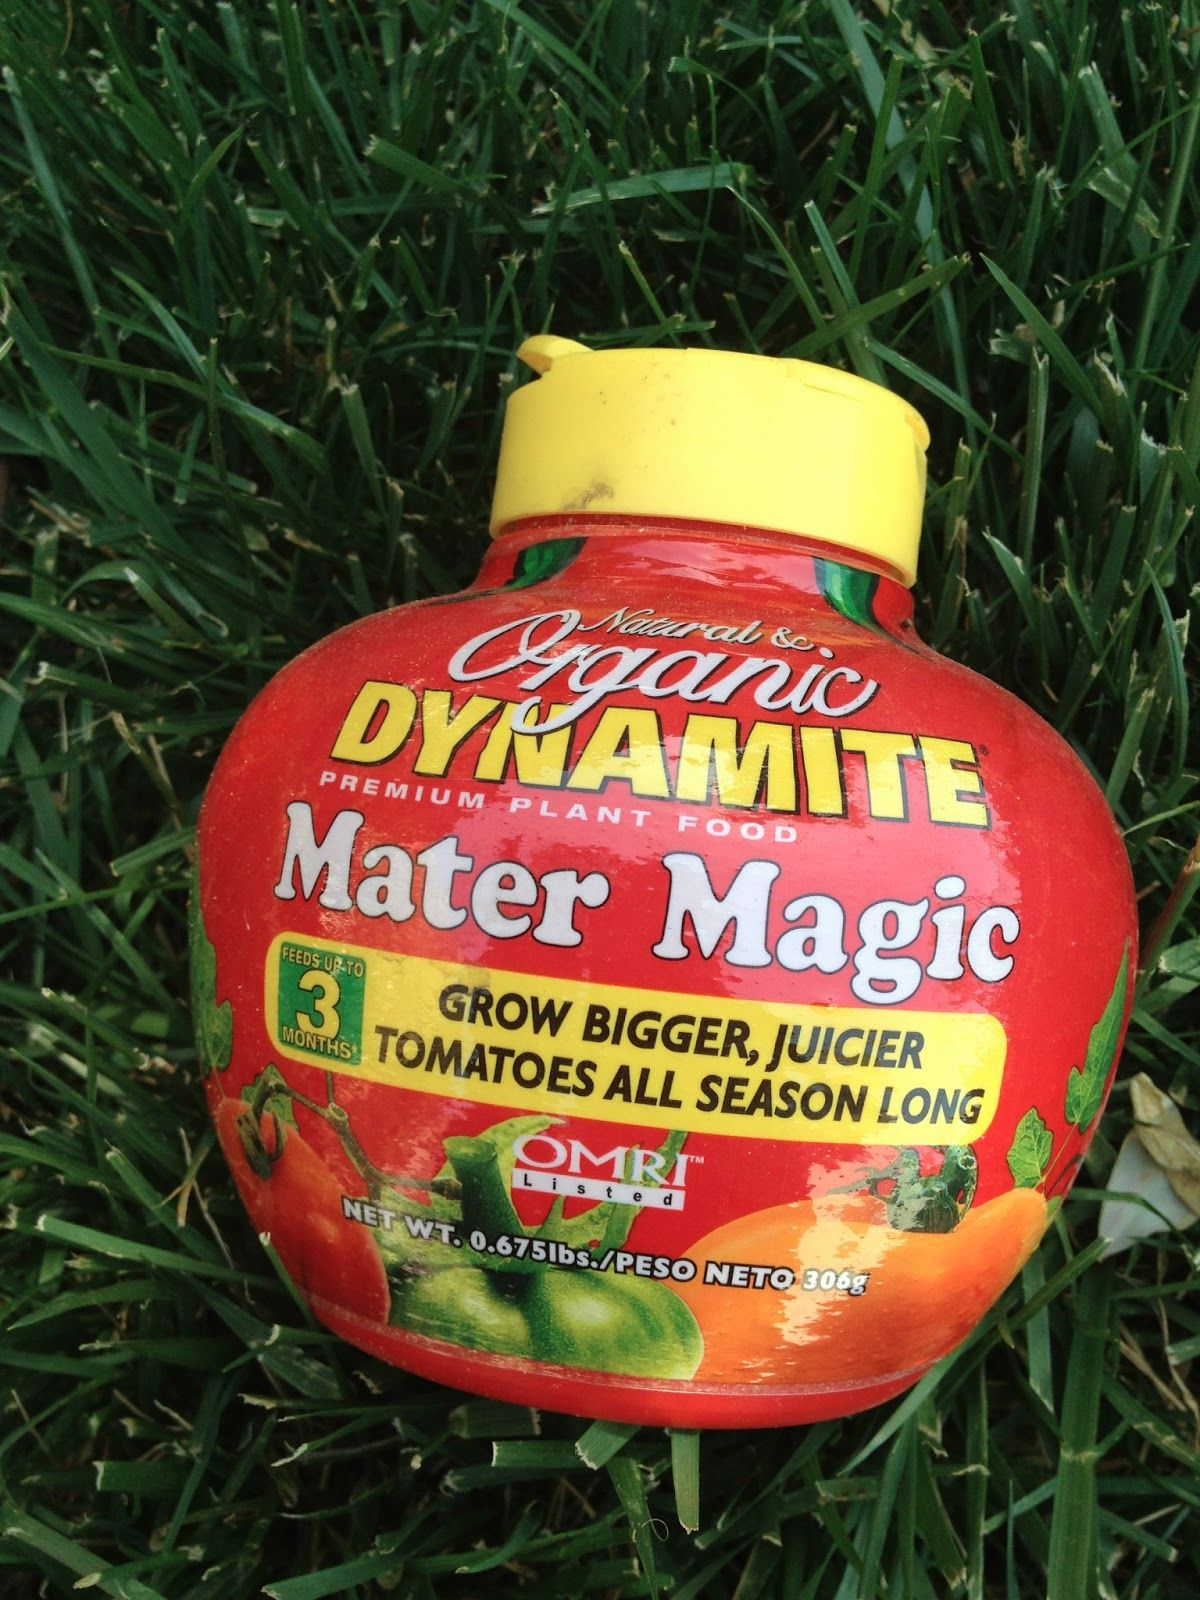 Mater Magic from Home Depot - organic fertilizer for